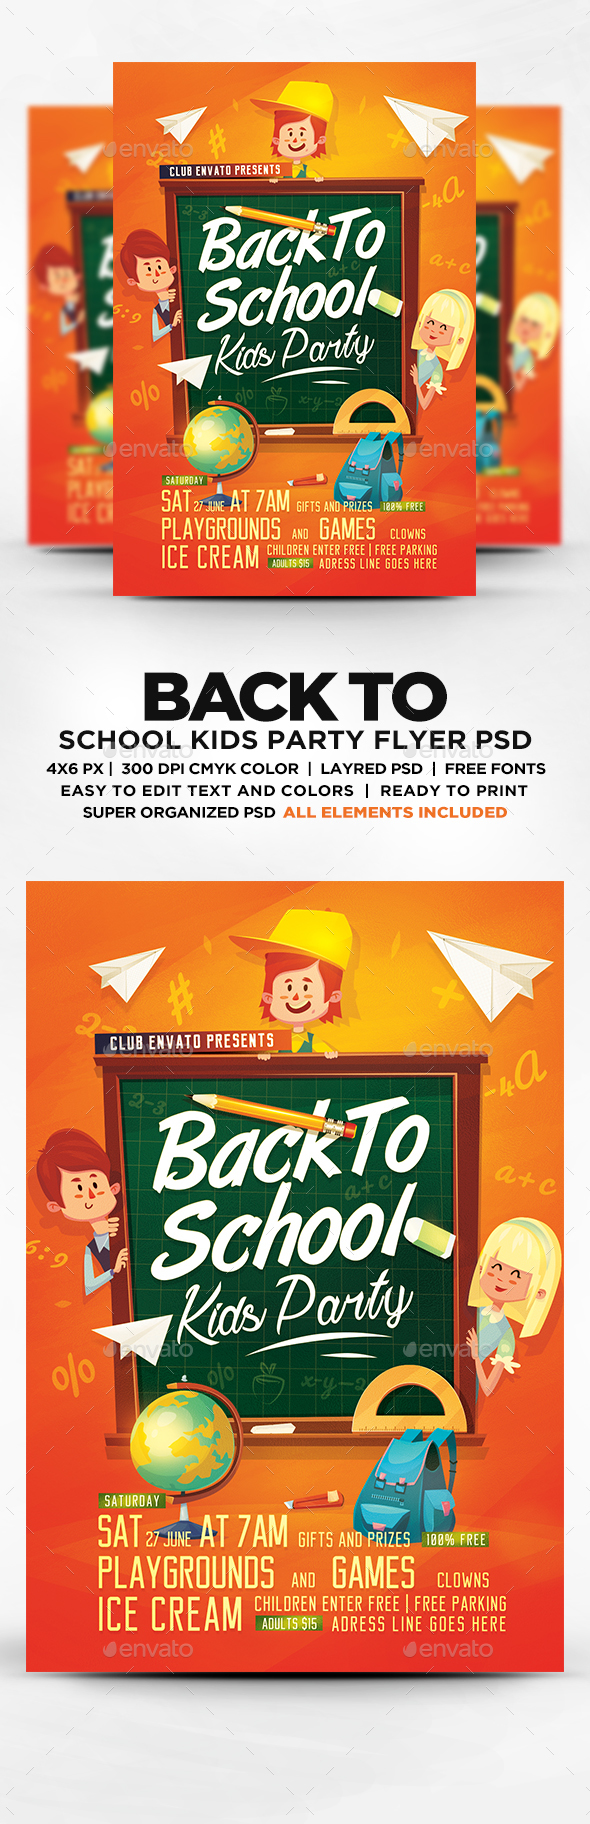 back to school kids party flyer template psd ux ui designer back to school kids party flyer template psd here